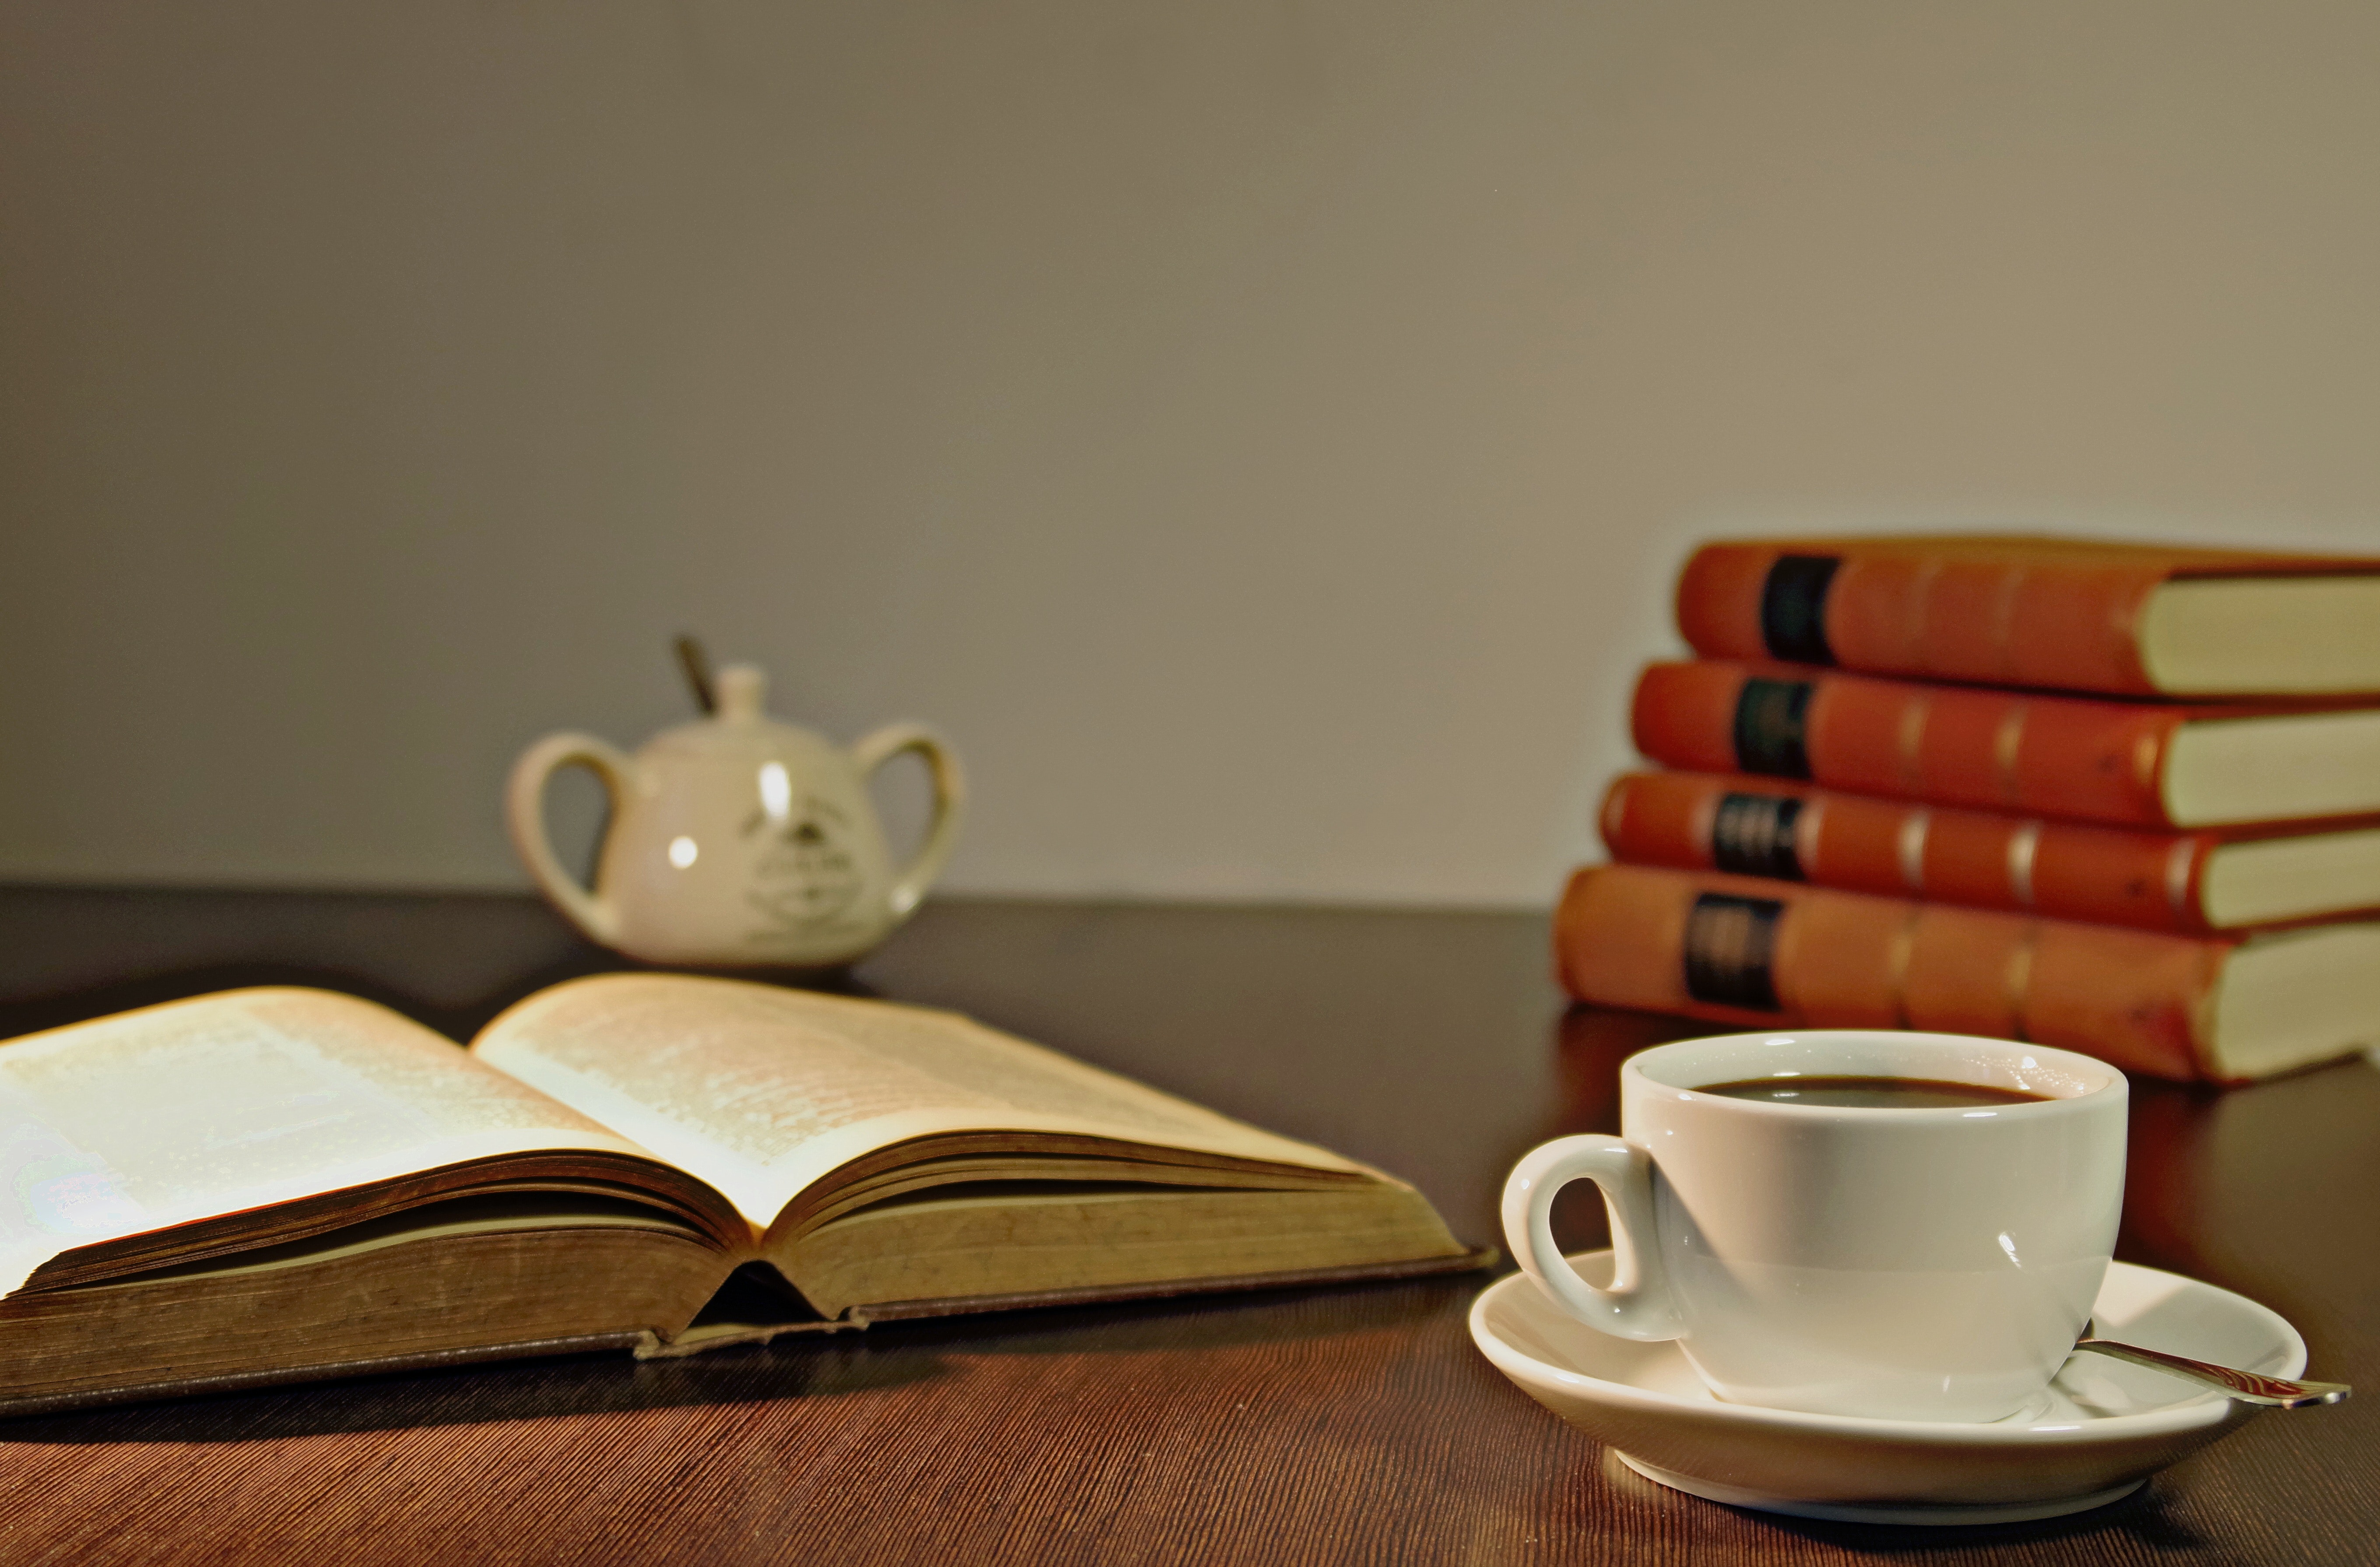 White Ceramic Teacup On Brown Wooden Table Beside Book Free Stock